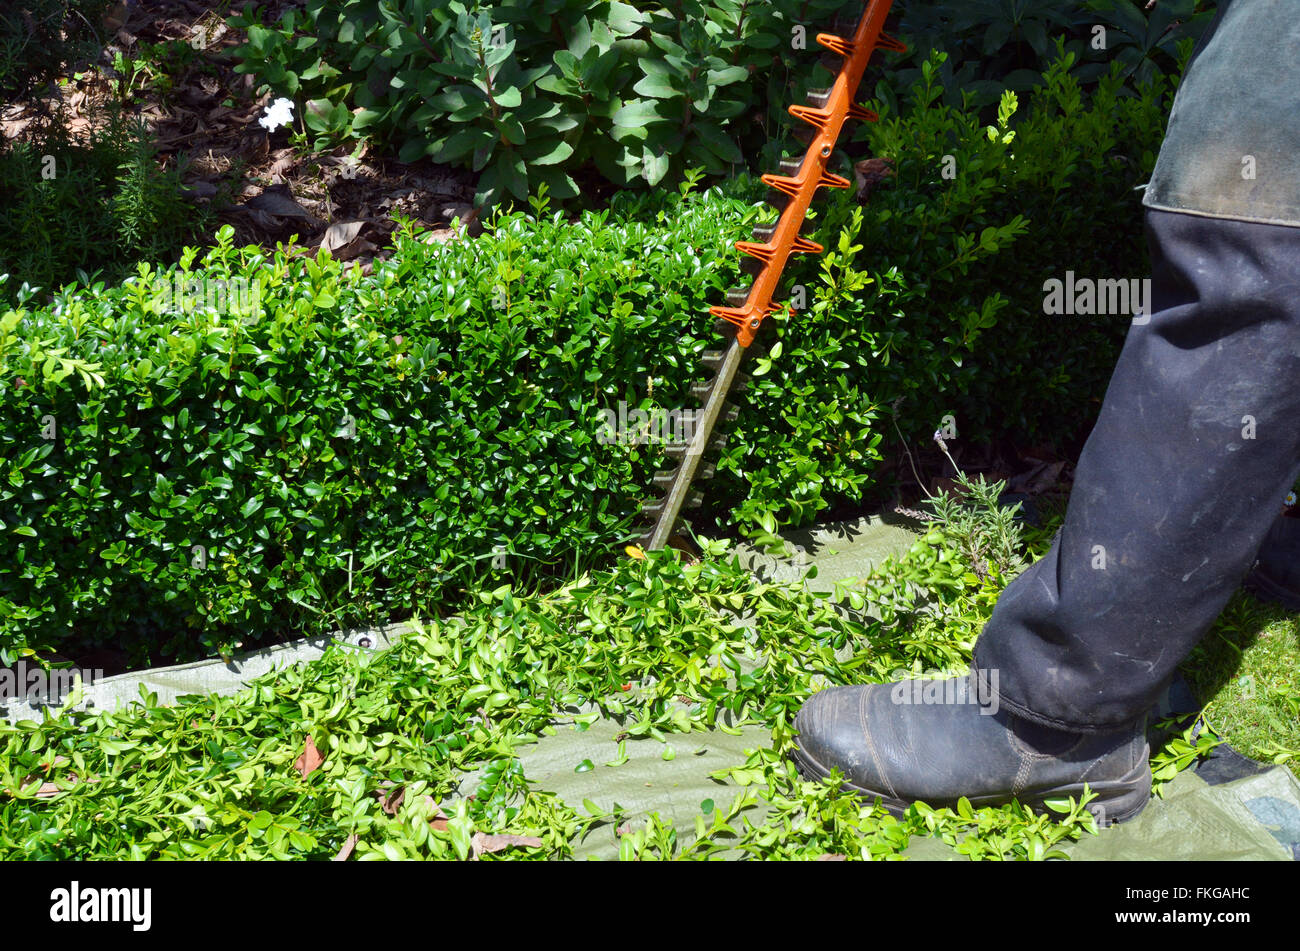 Gardener trimming plants in a garden with a trimmer. - Stock Image